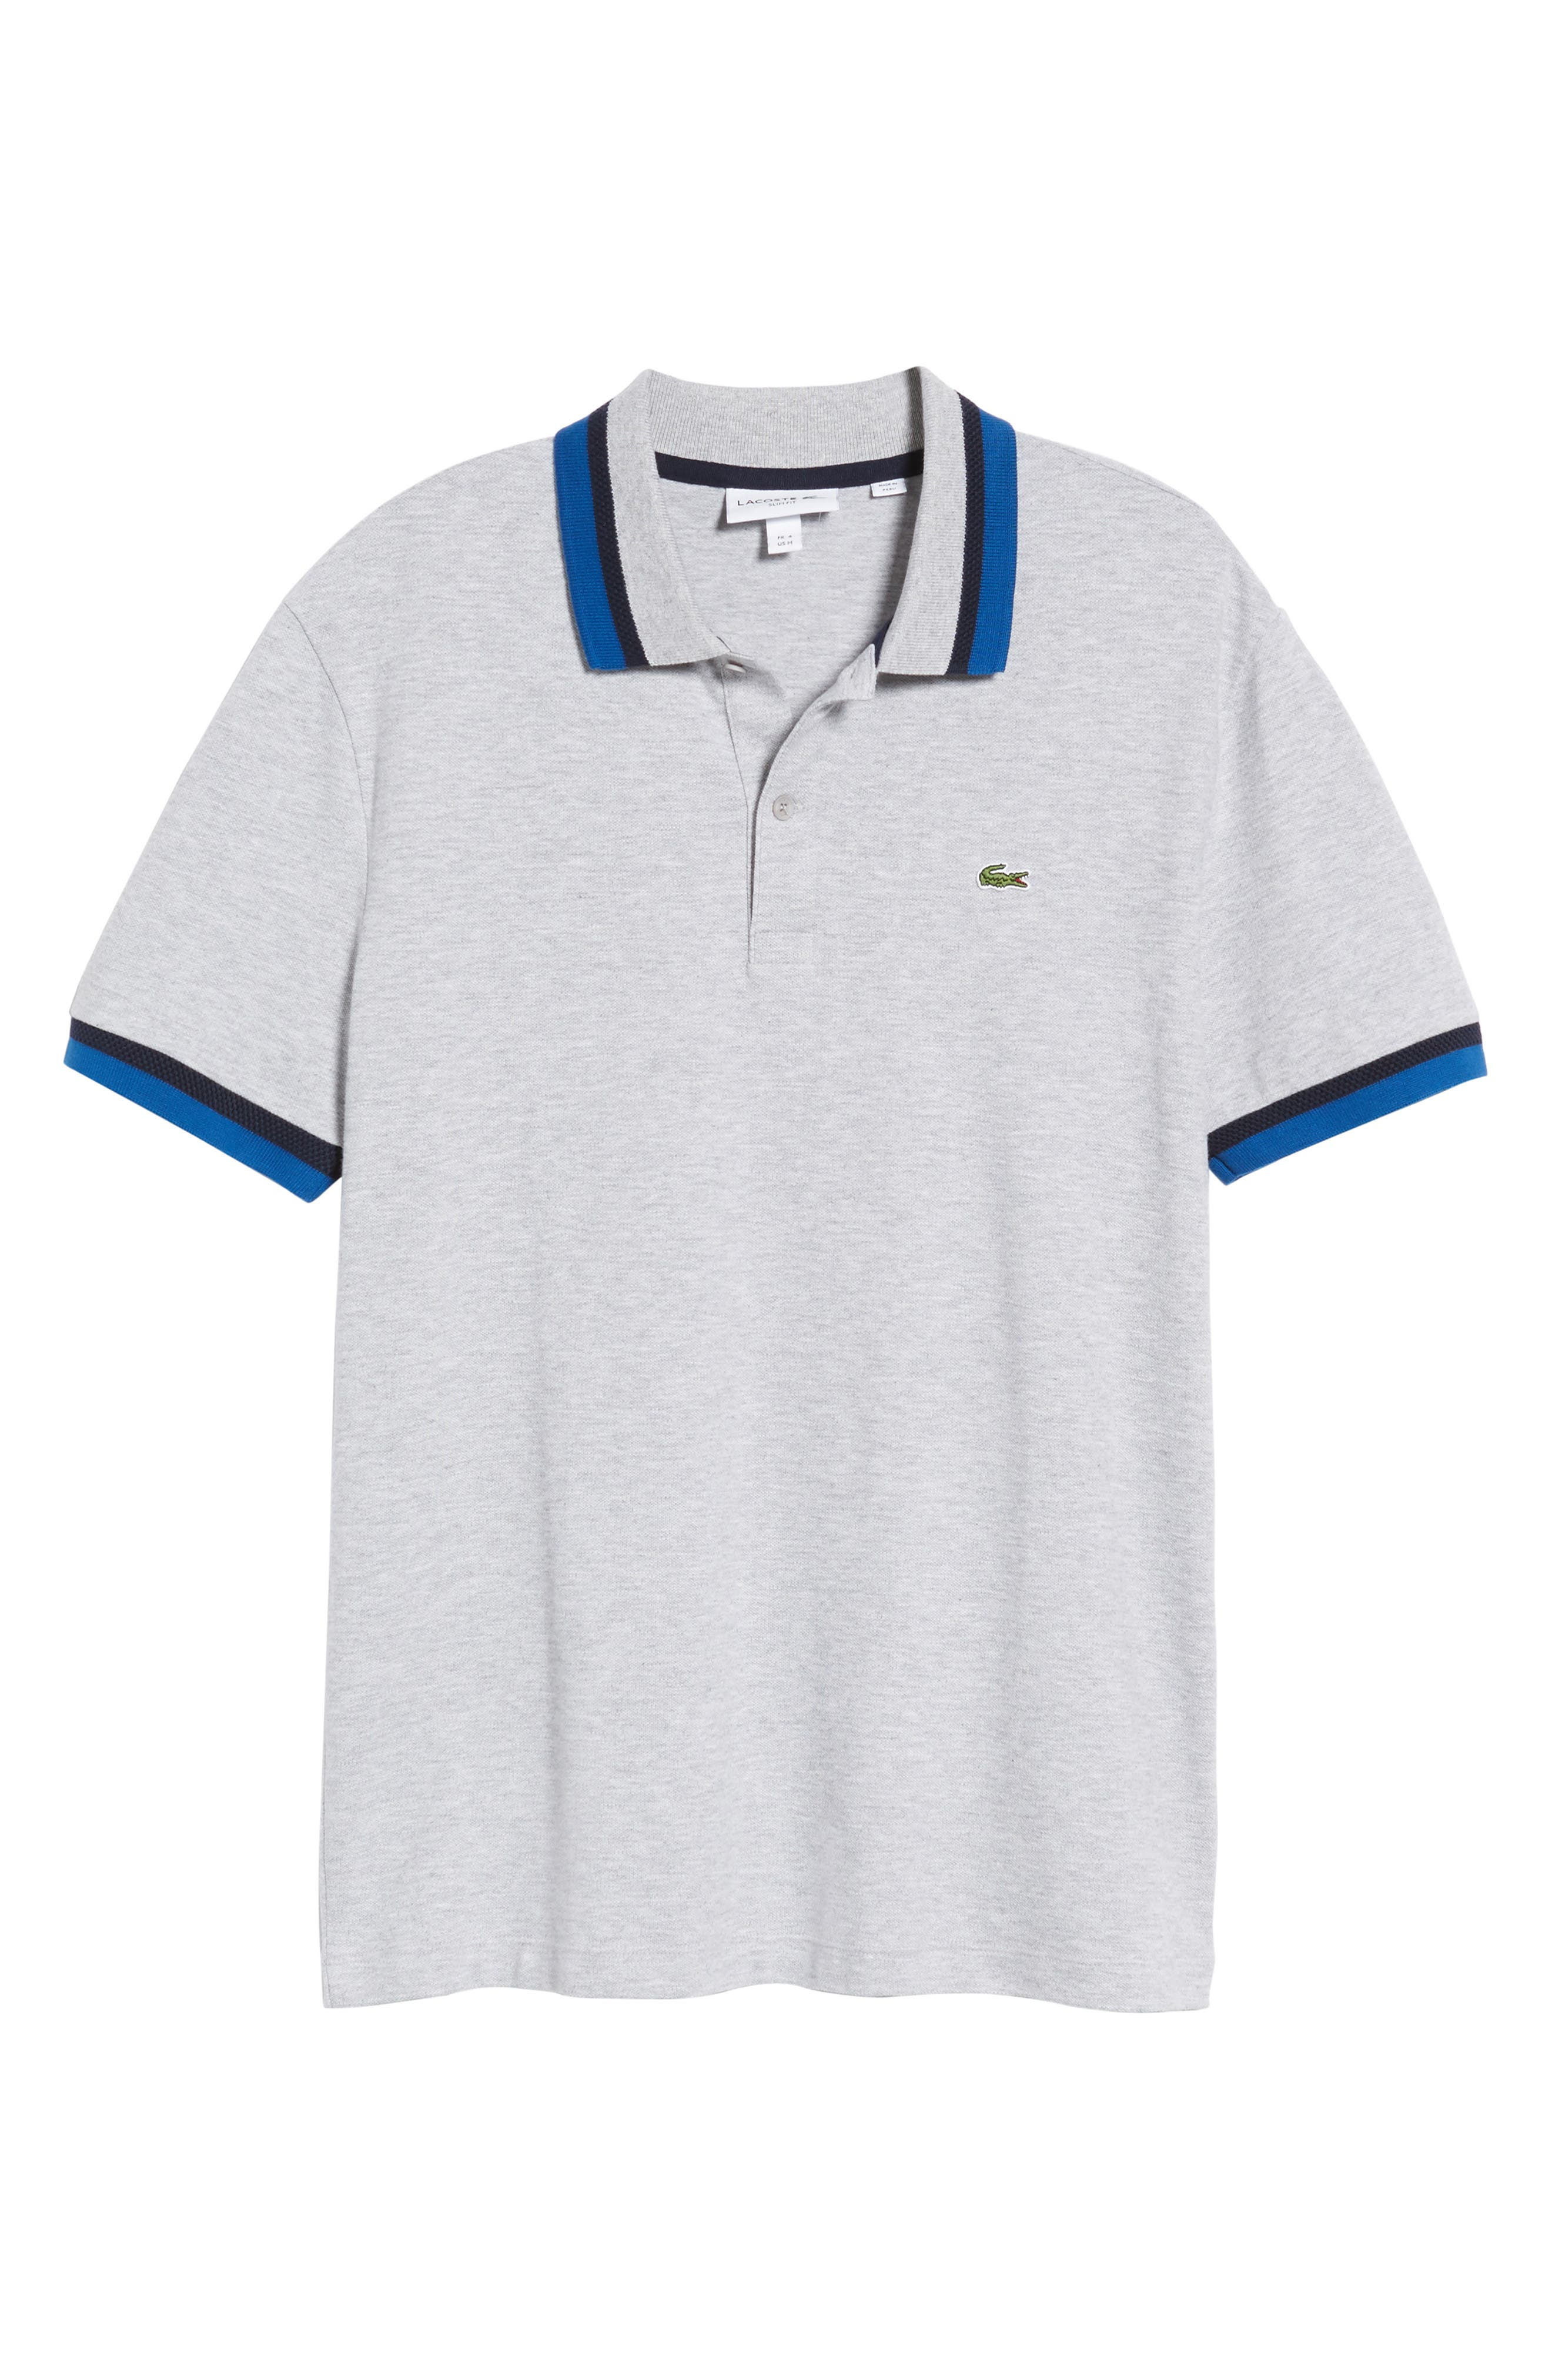 Slim Fit Contrast Stretch Cotton Piqué Polo,                             Alternate thumbnail 6, color,                             Silver Chine/ Navy Blue-El